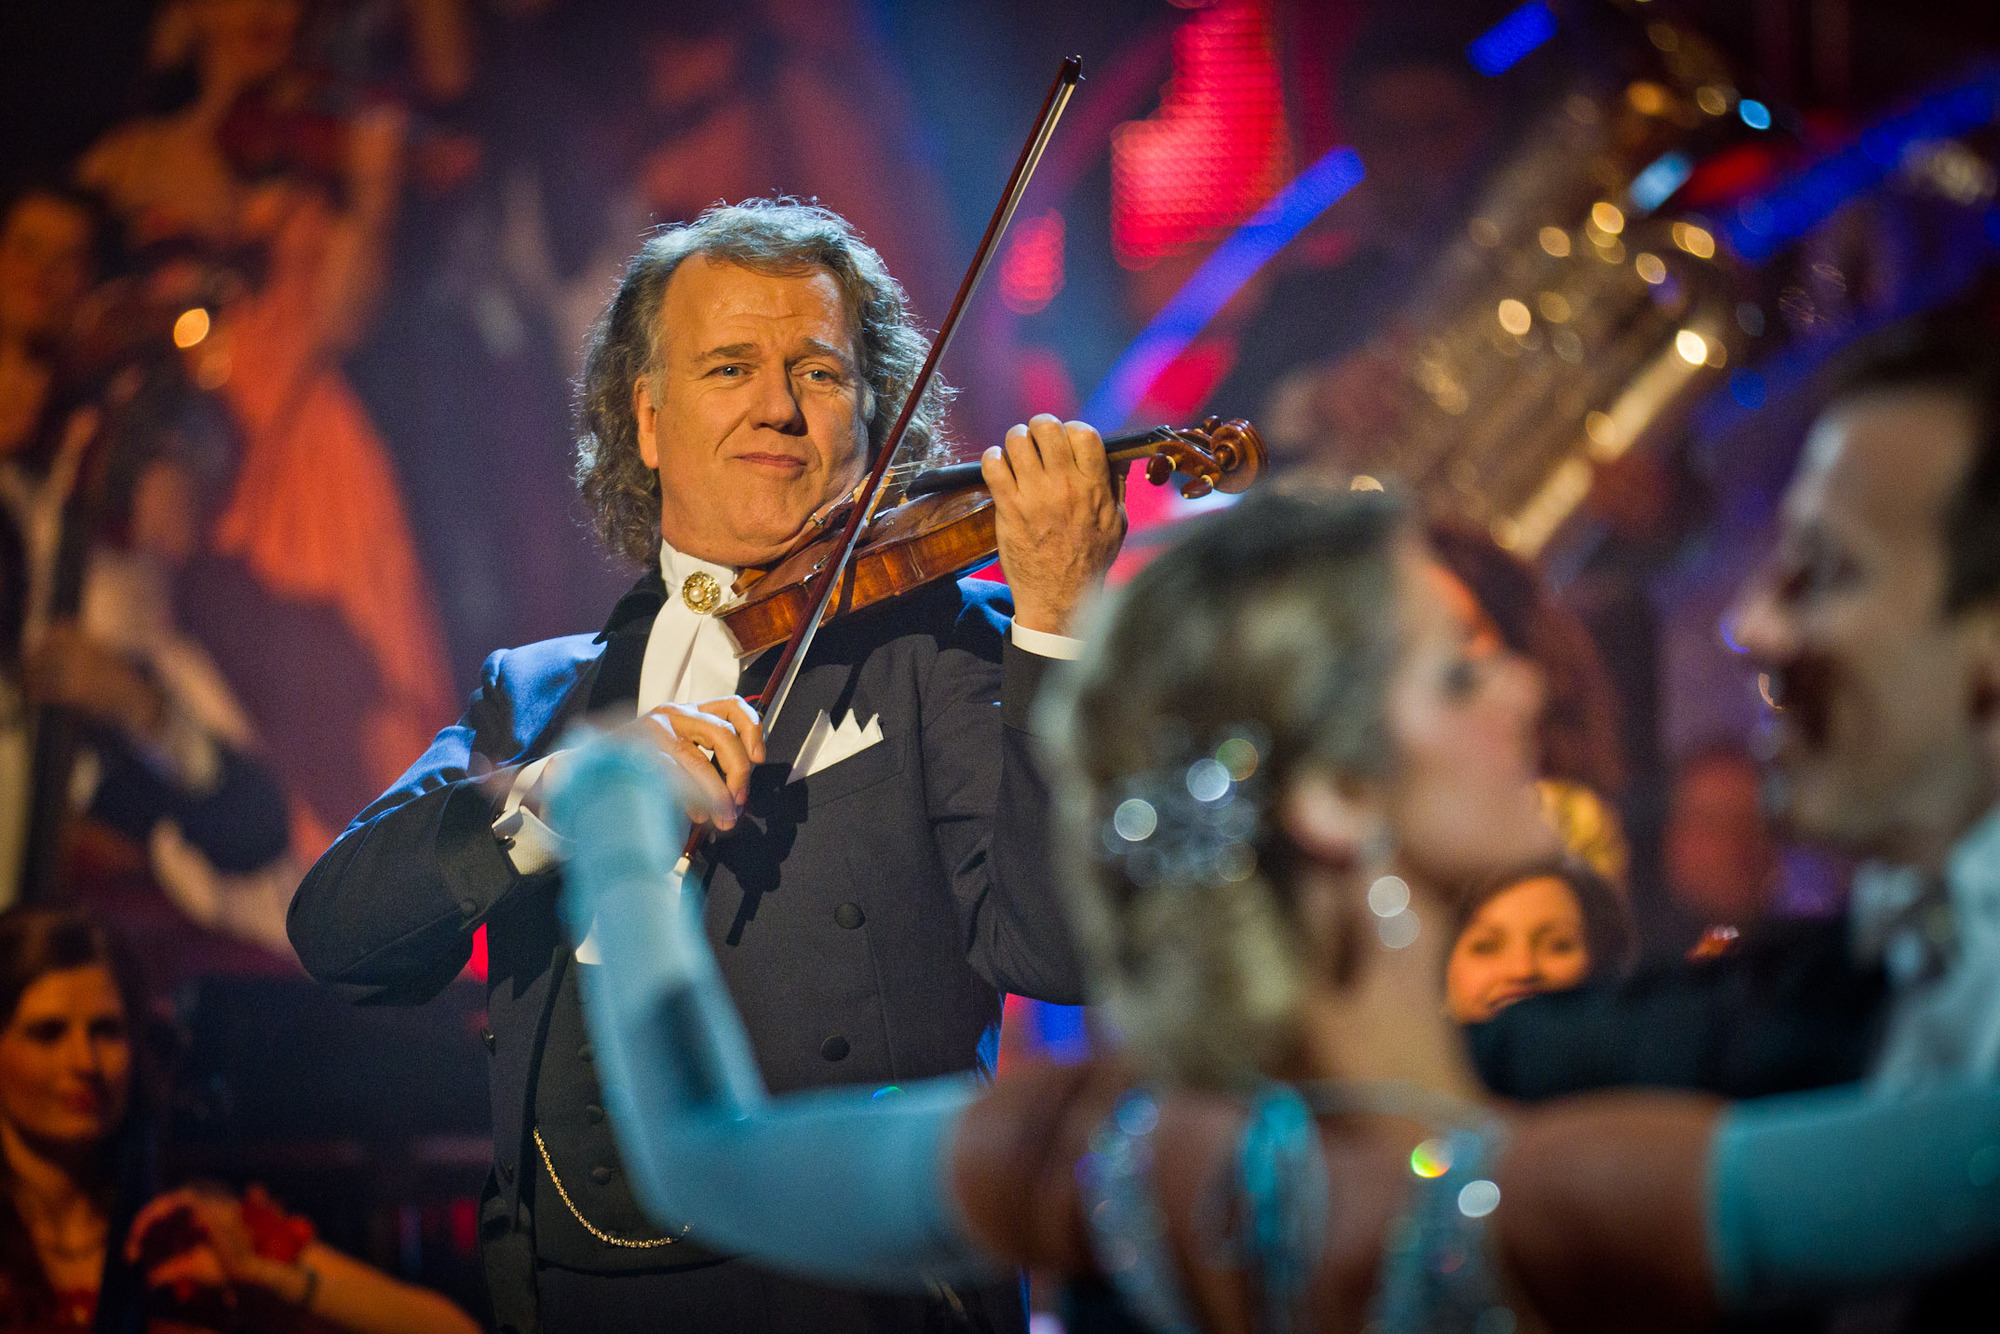 Strictly dancers and Andre Rieu